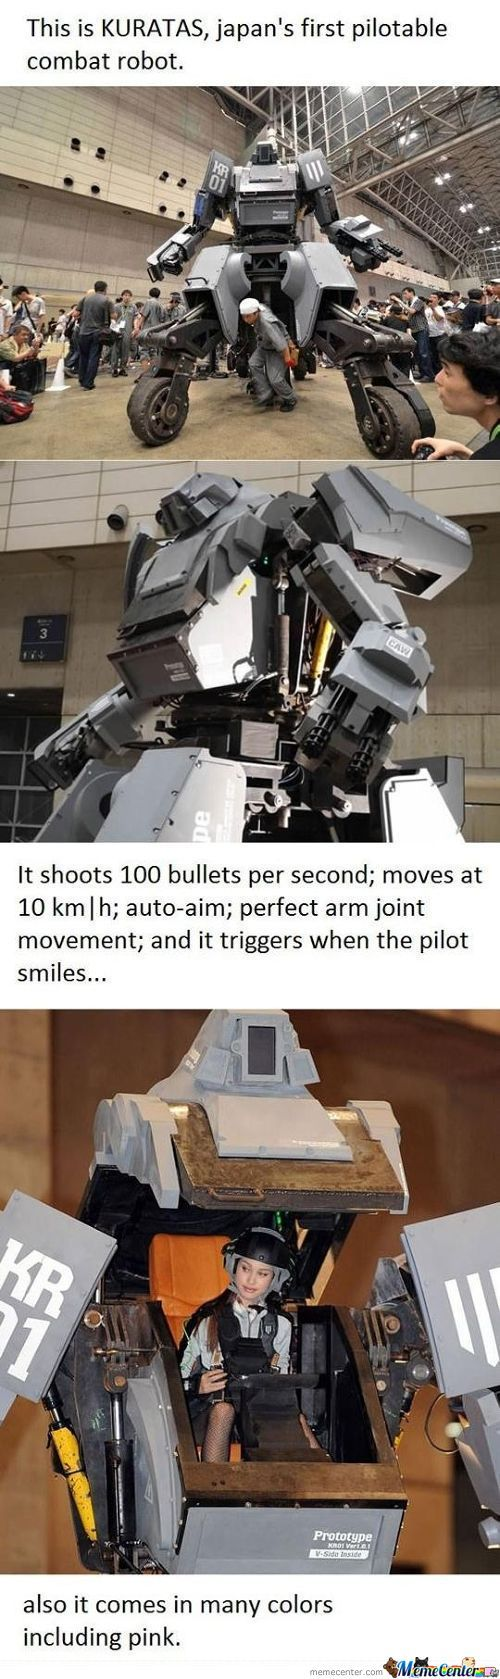 This Is Kuratas, Japans First Pilotable Combat Robot